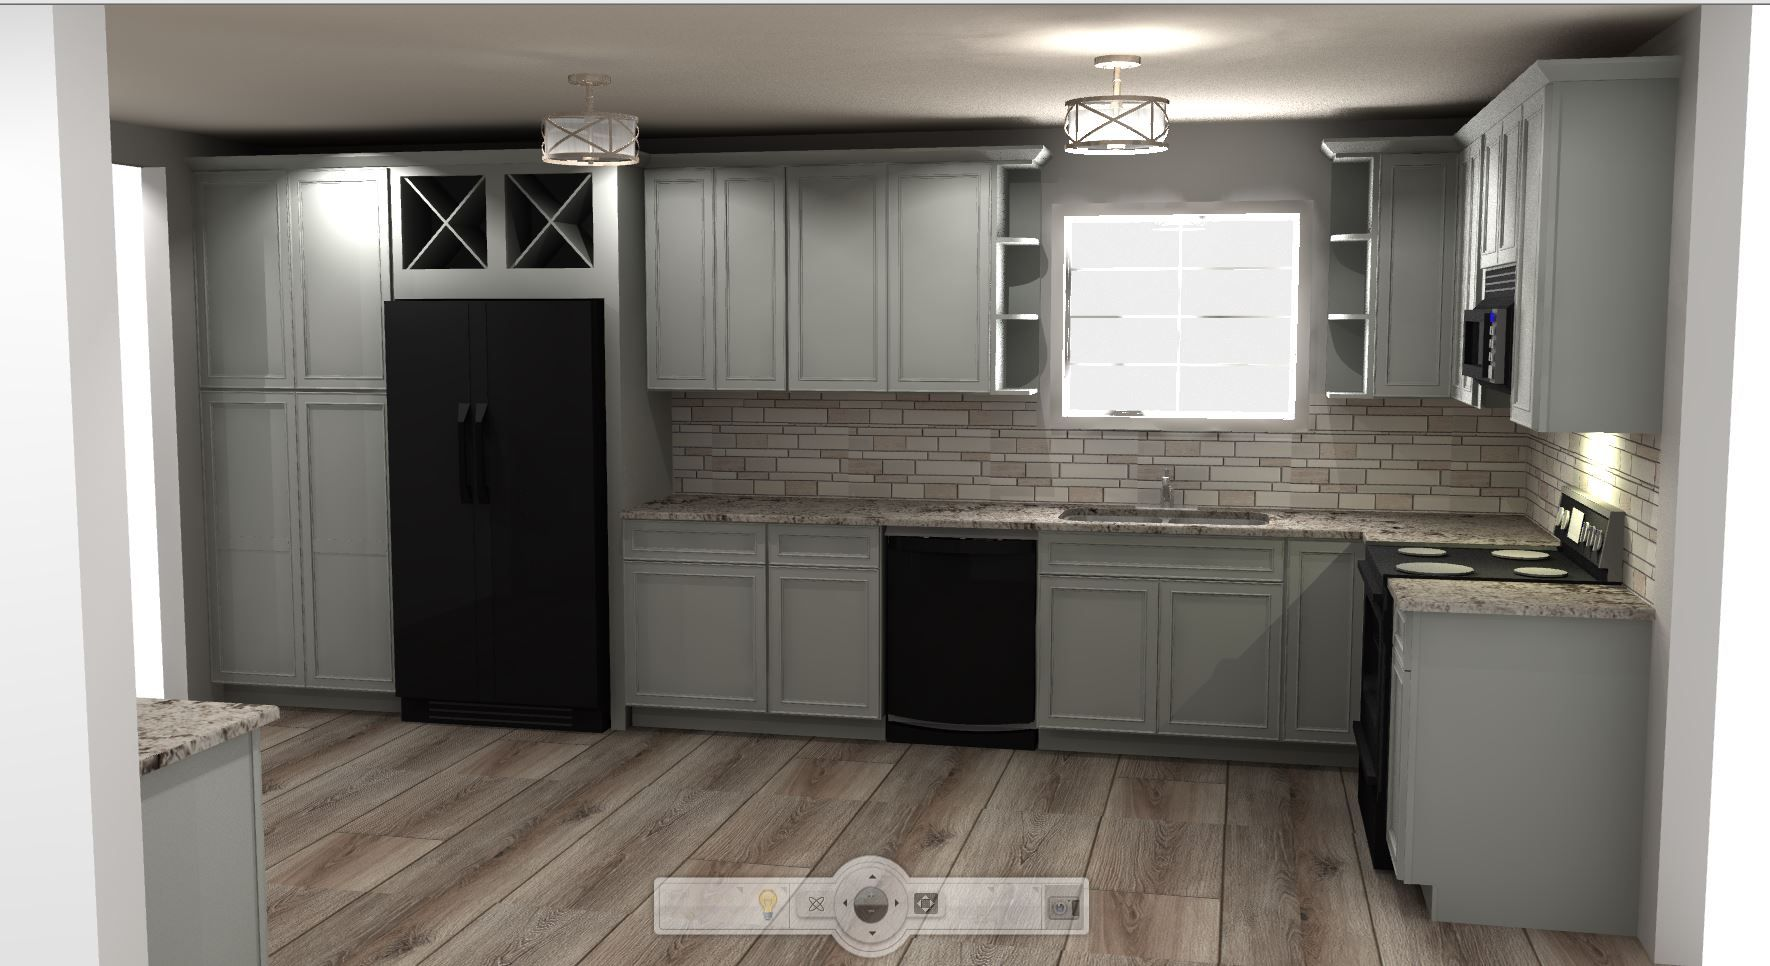 Designed And Rendered By Pamela B For Eclectic Harmony Interiors Shenandoah Painted Stone Kitchen And Bath Design Bath Design Kitchen And Bath